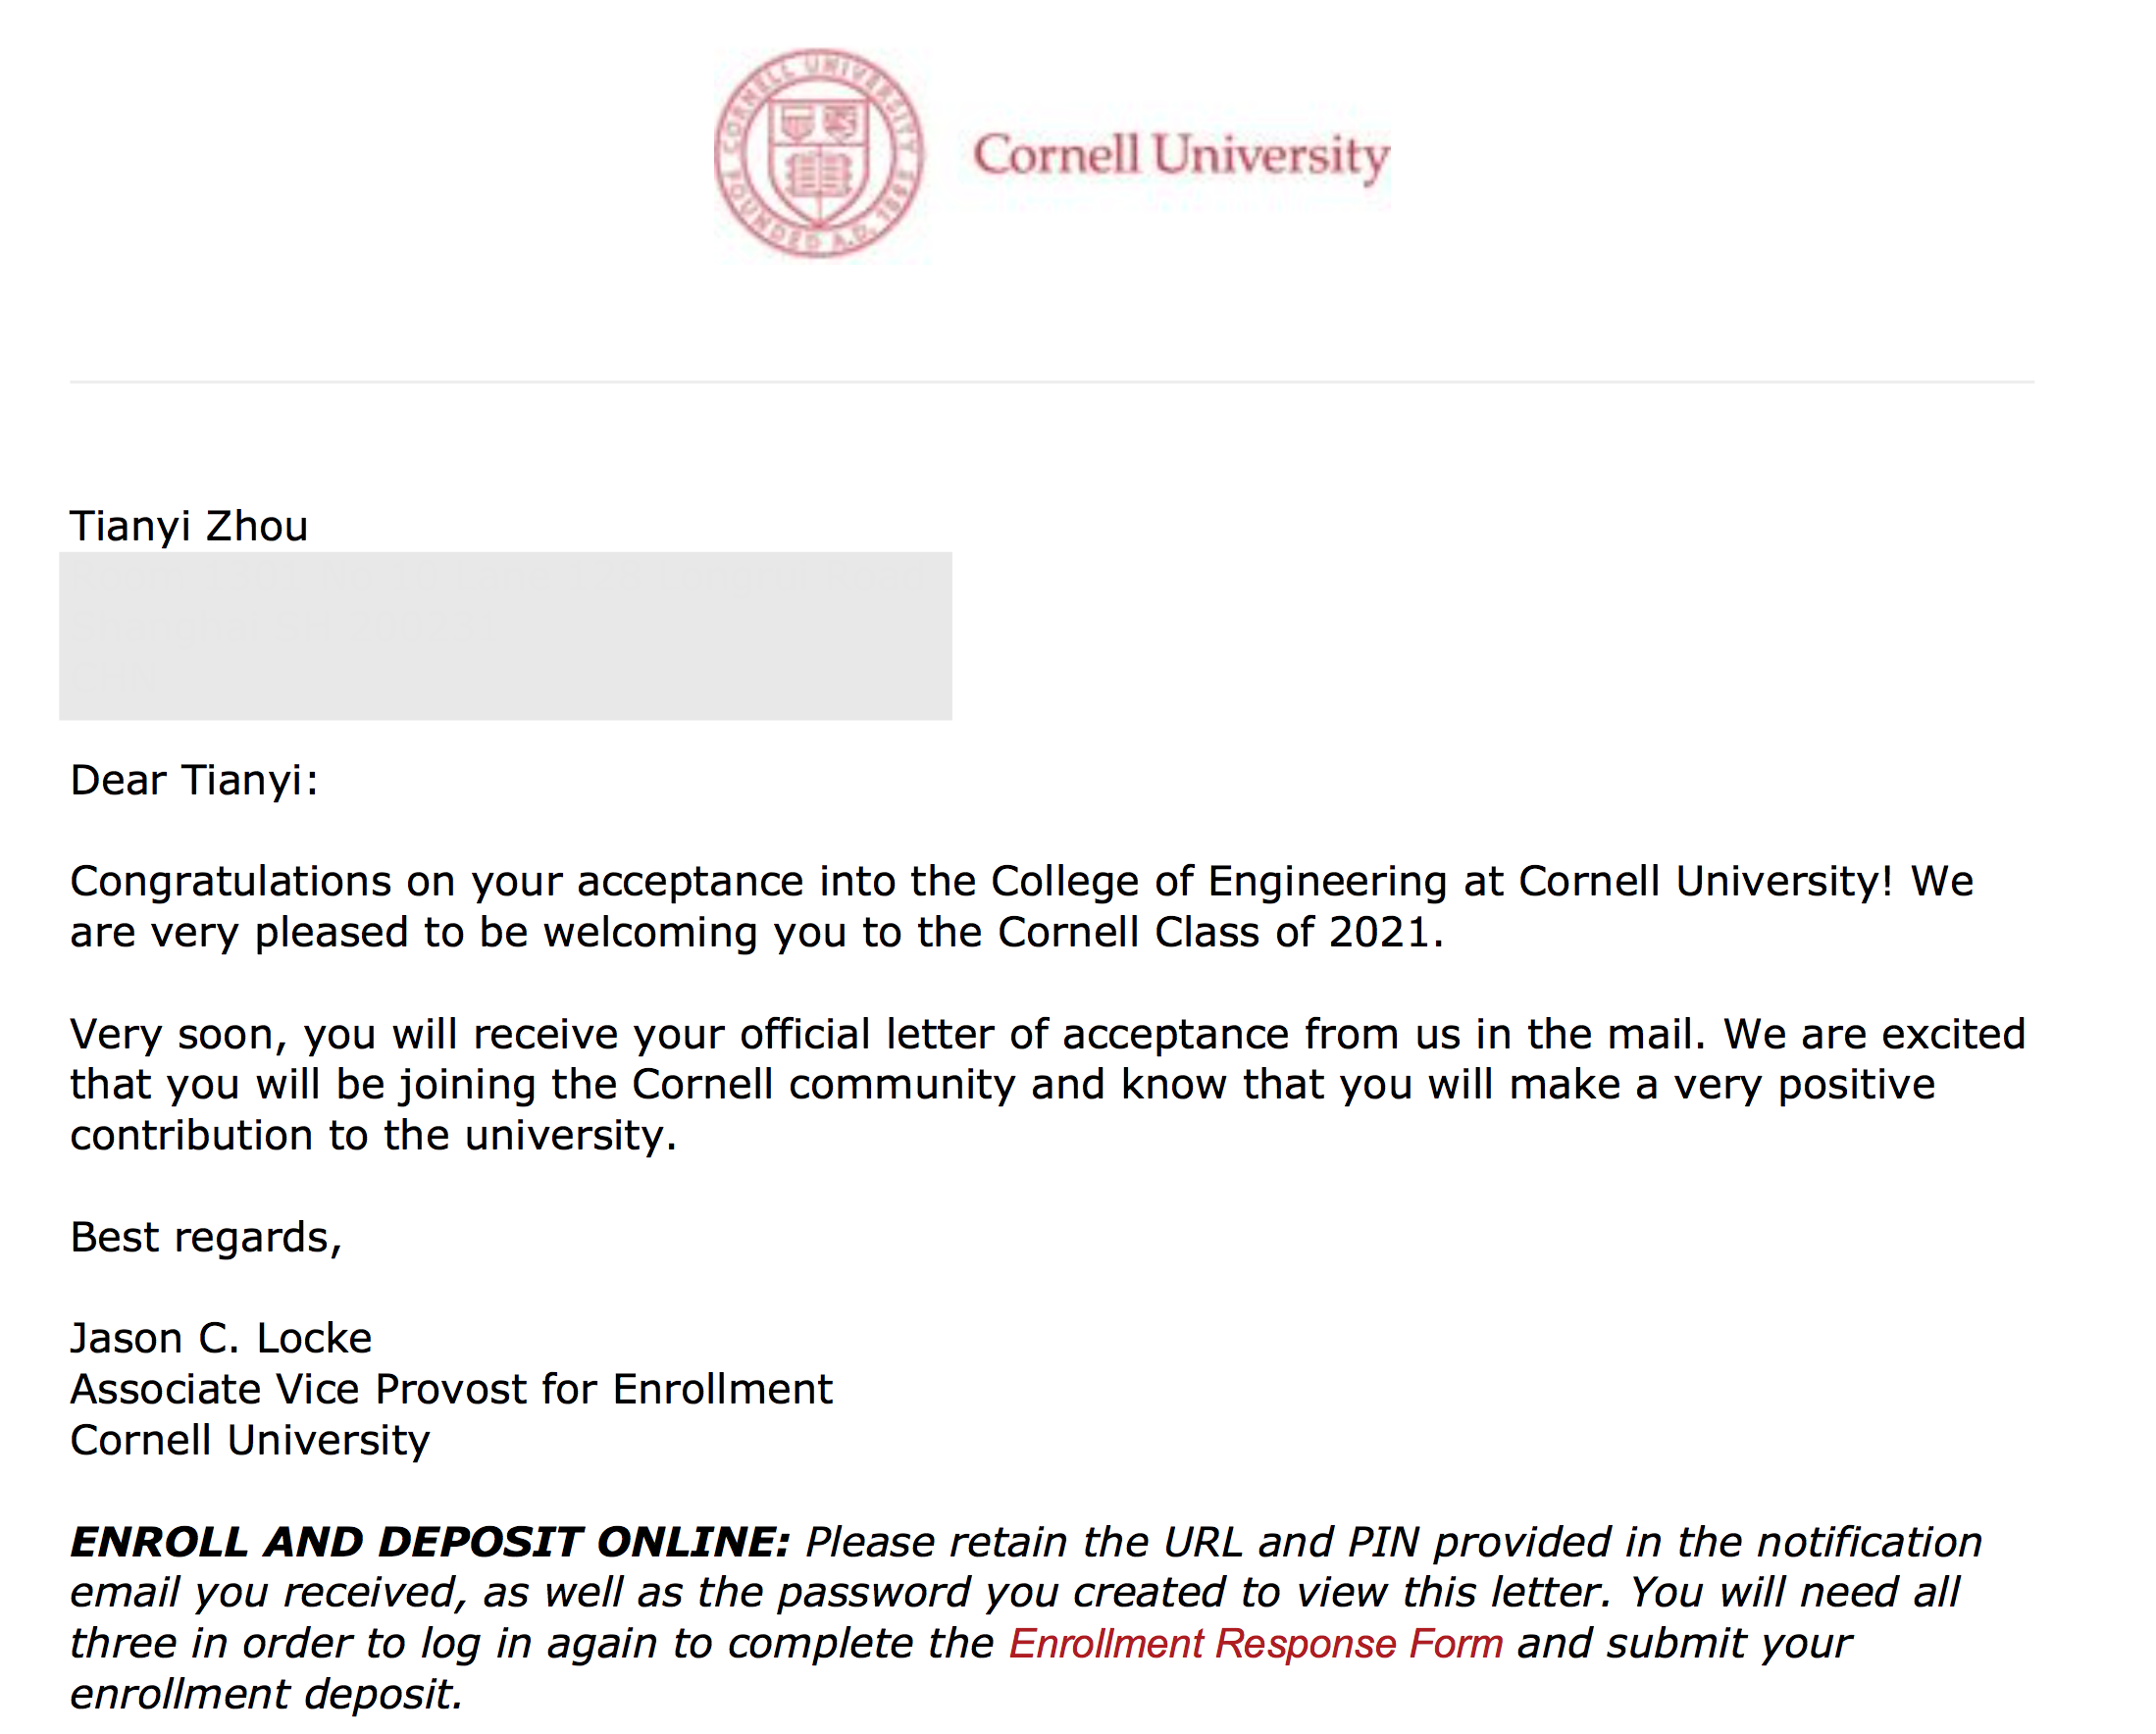 Letter of Acceptance from Cornell Engineering